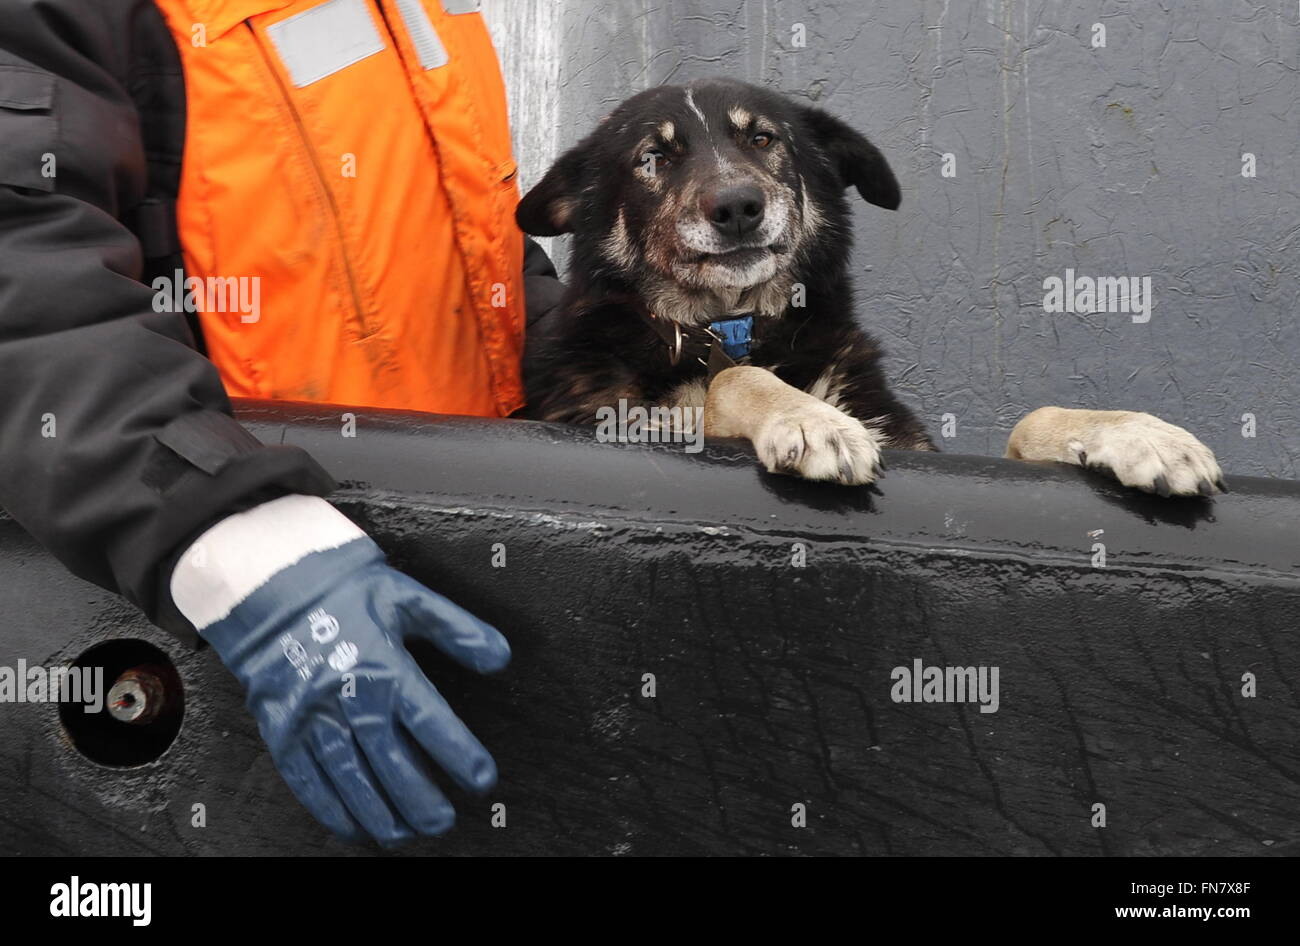 Murmansk Region, Russia. 14th Mar, 2016. A dog at a ceremony to welcome the Russian Borei-class nuclear-powered - Stock Image